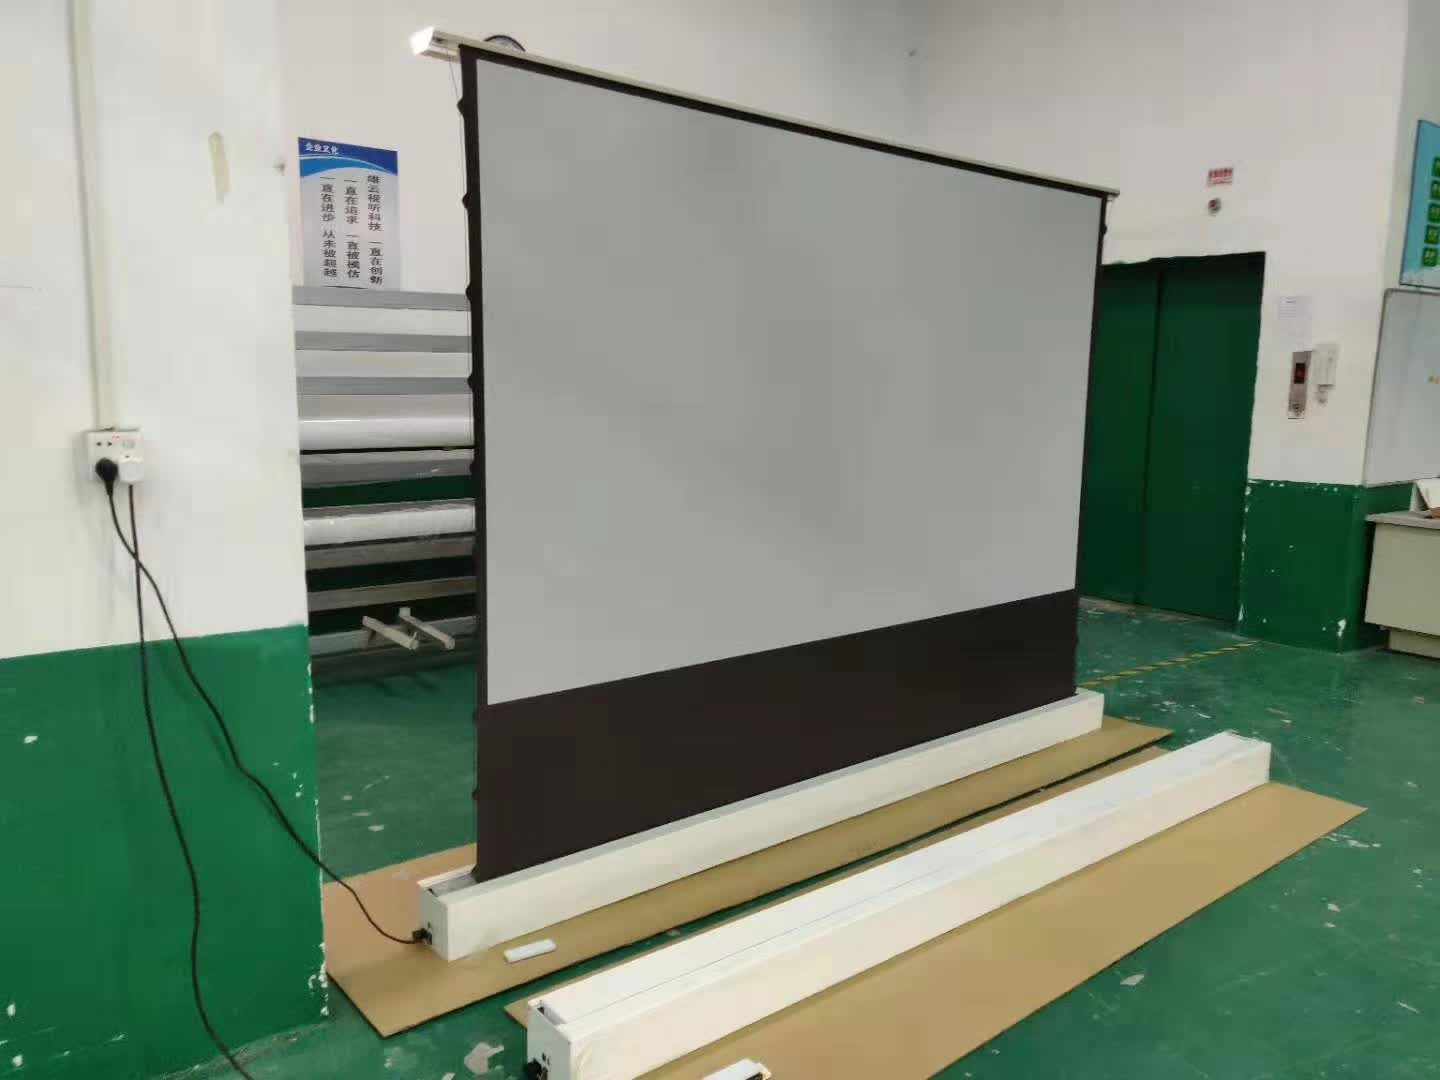 Motorized Electric Floor rising front projection screen motorised floor stand Ultra short throw laser grey projector screens